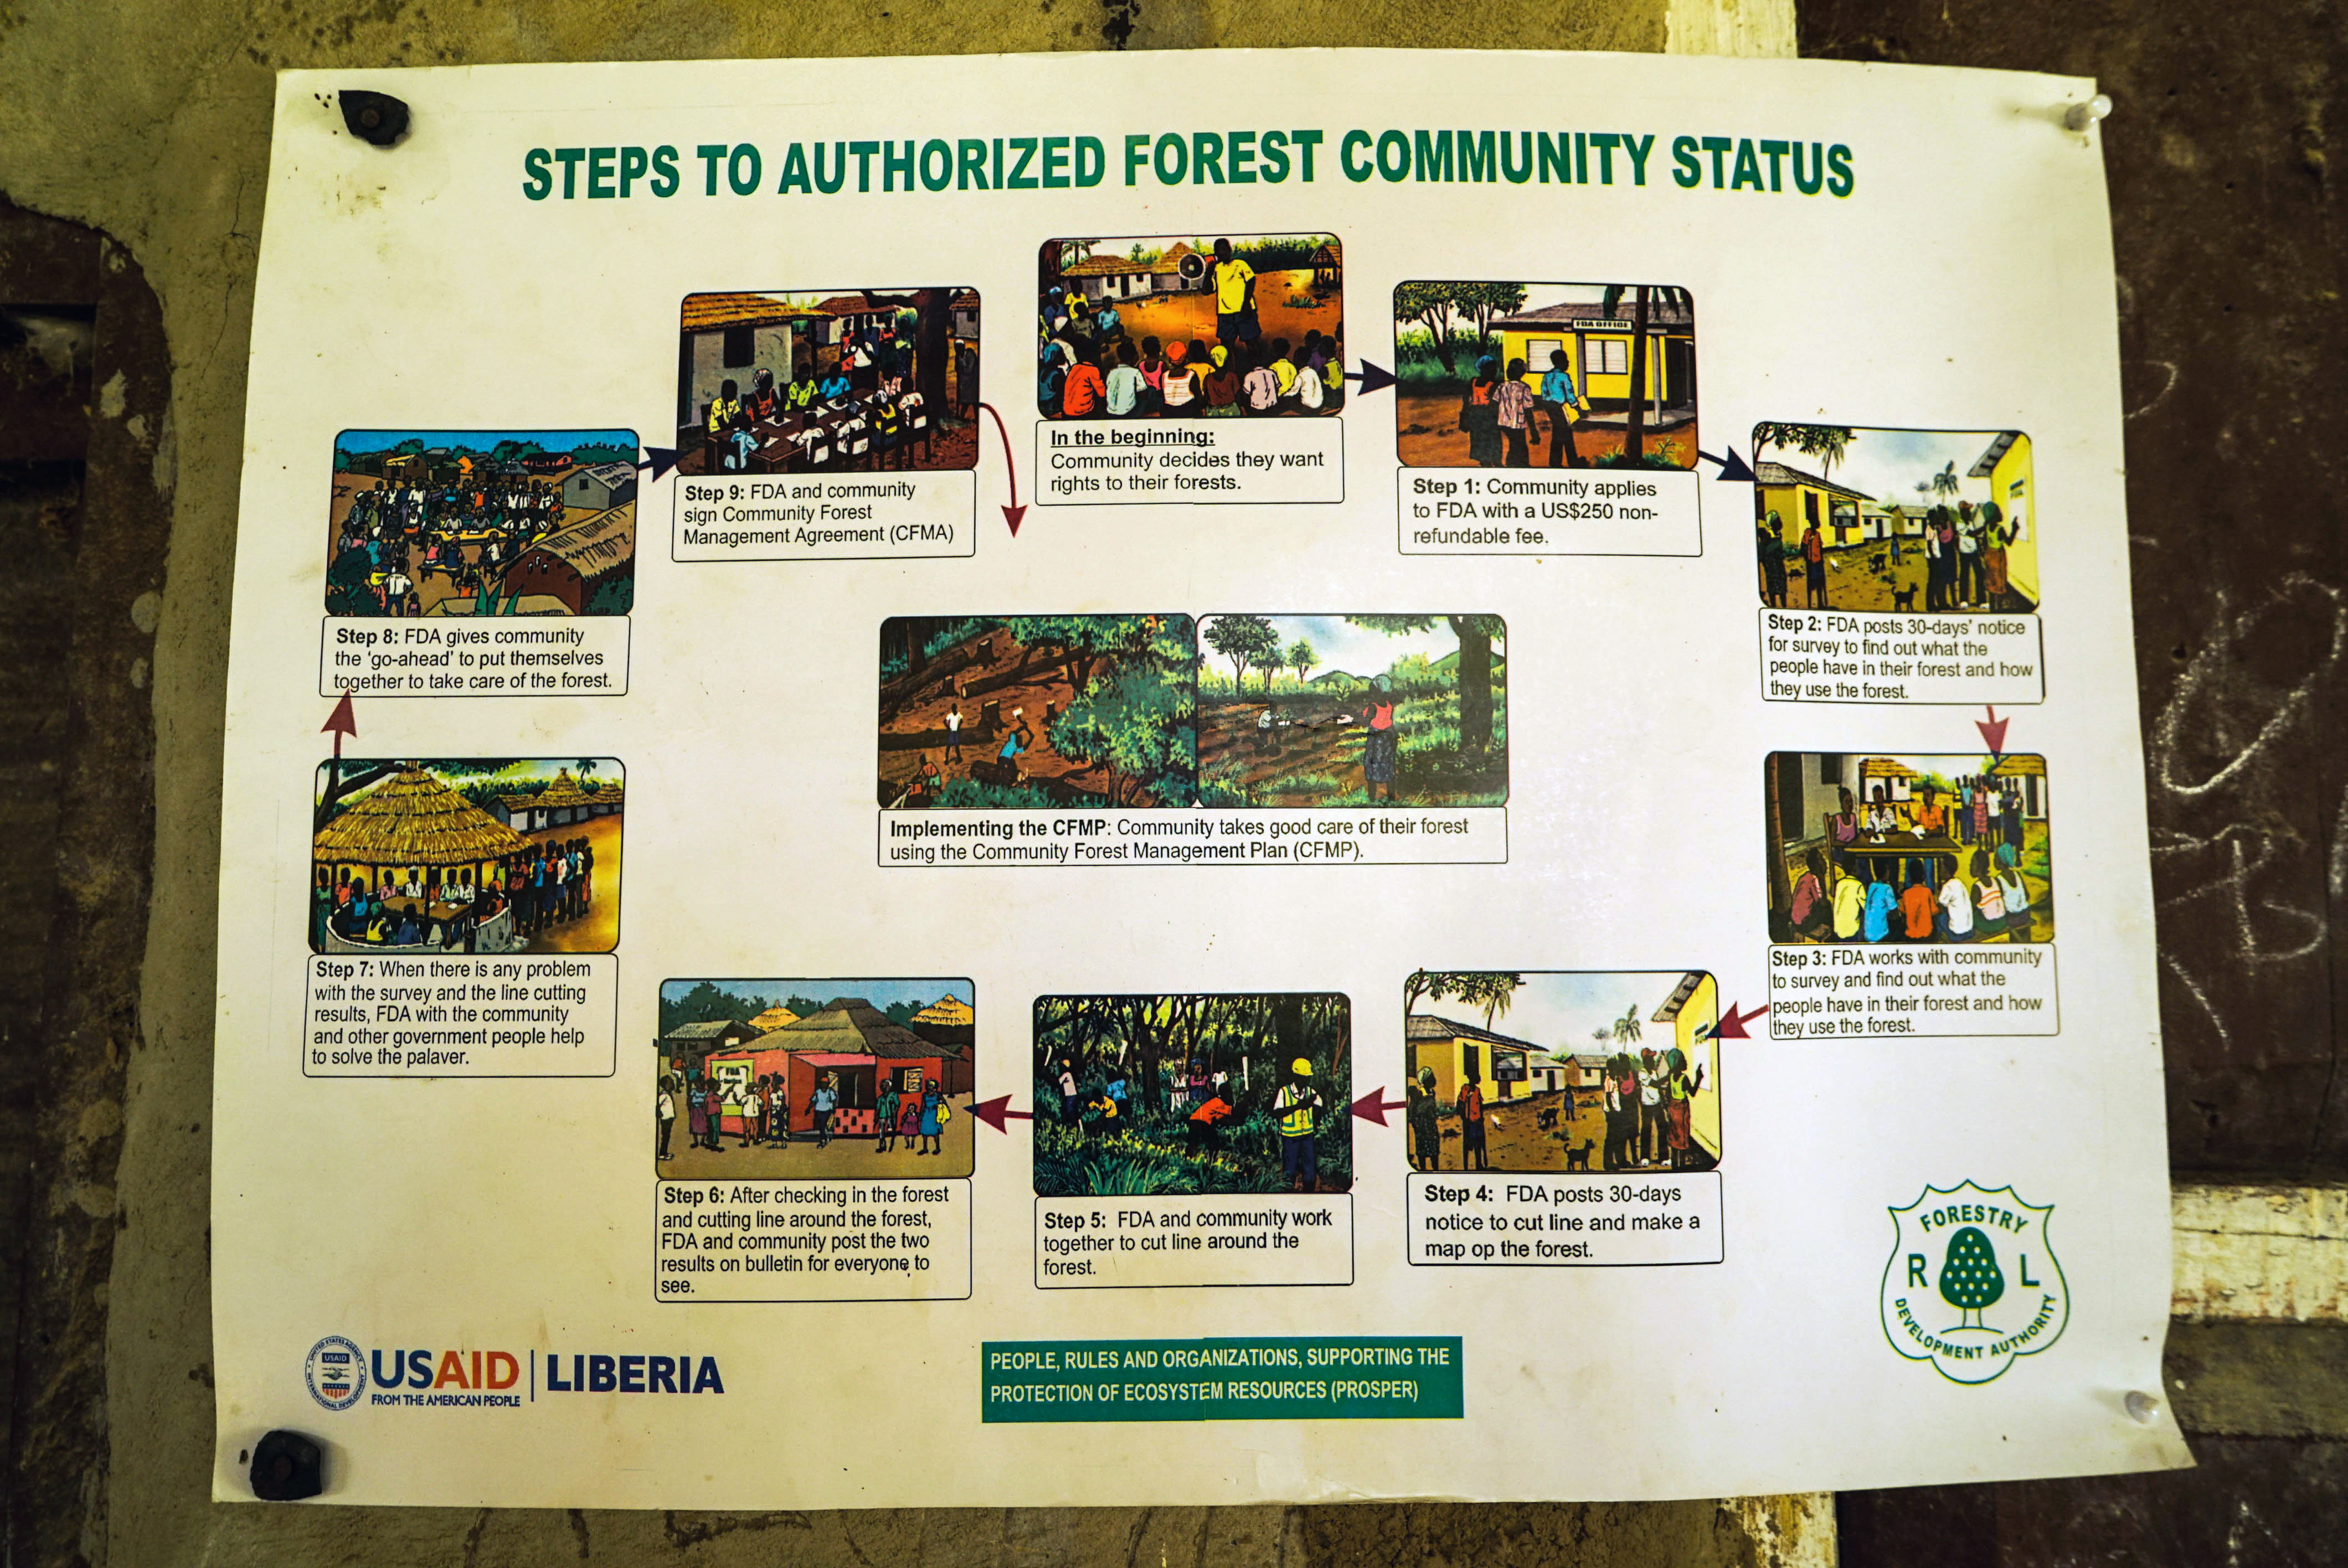 Steps to Authorized Forest Community Status